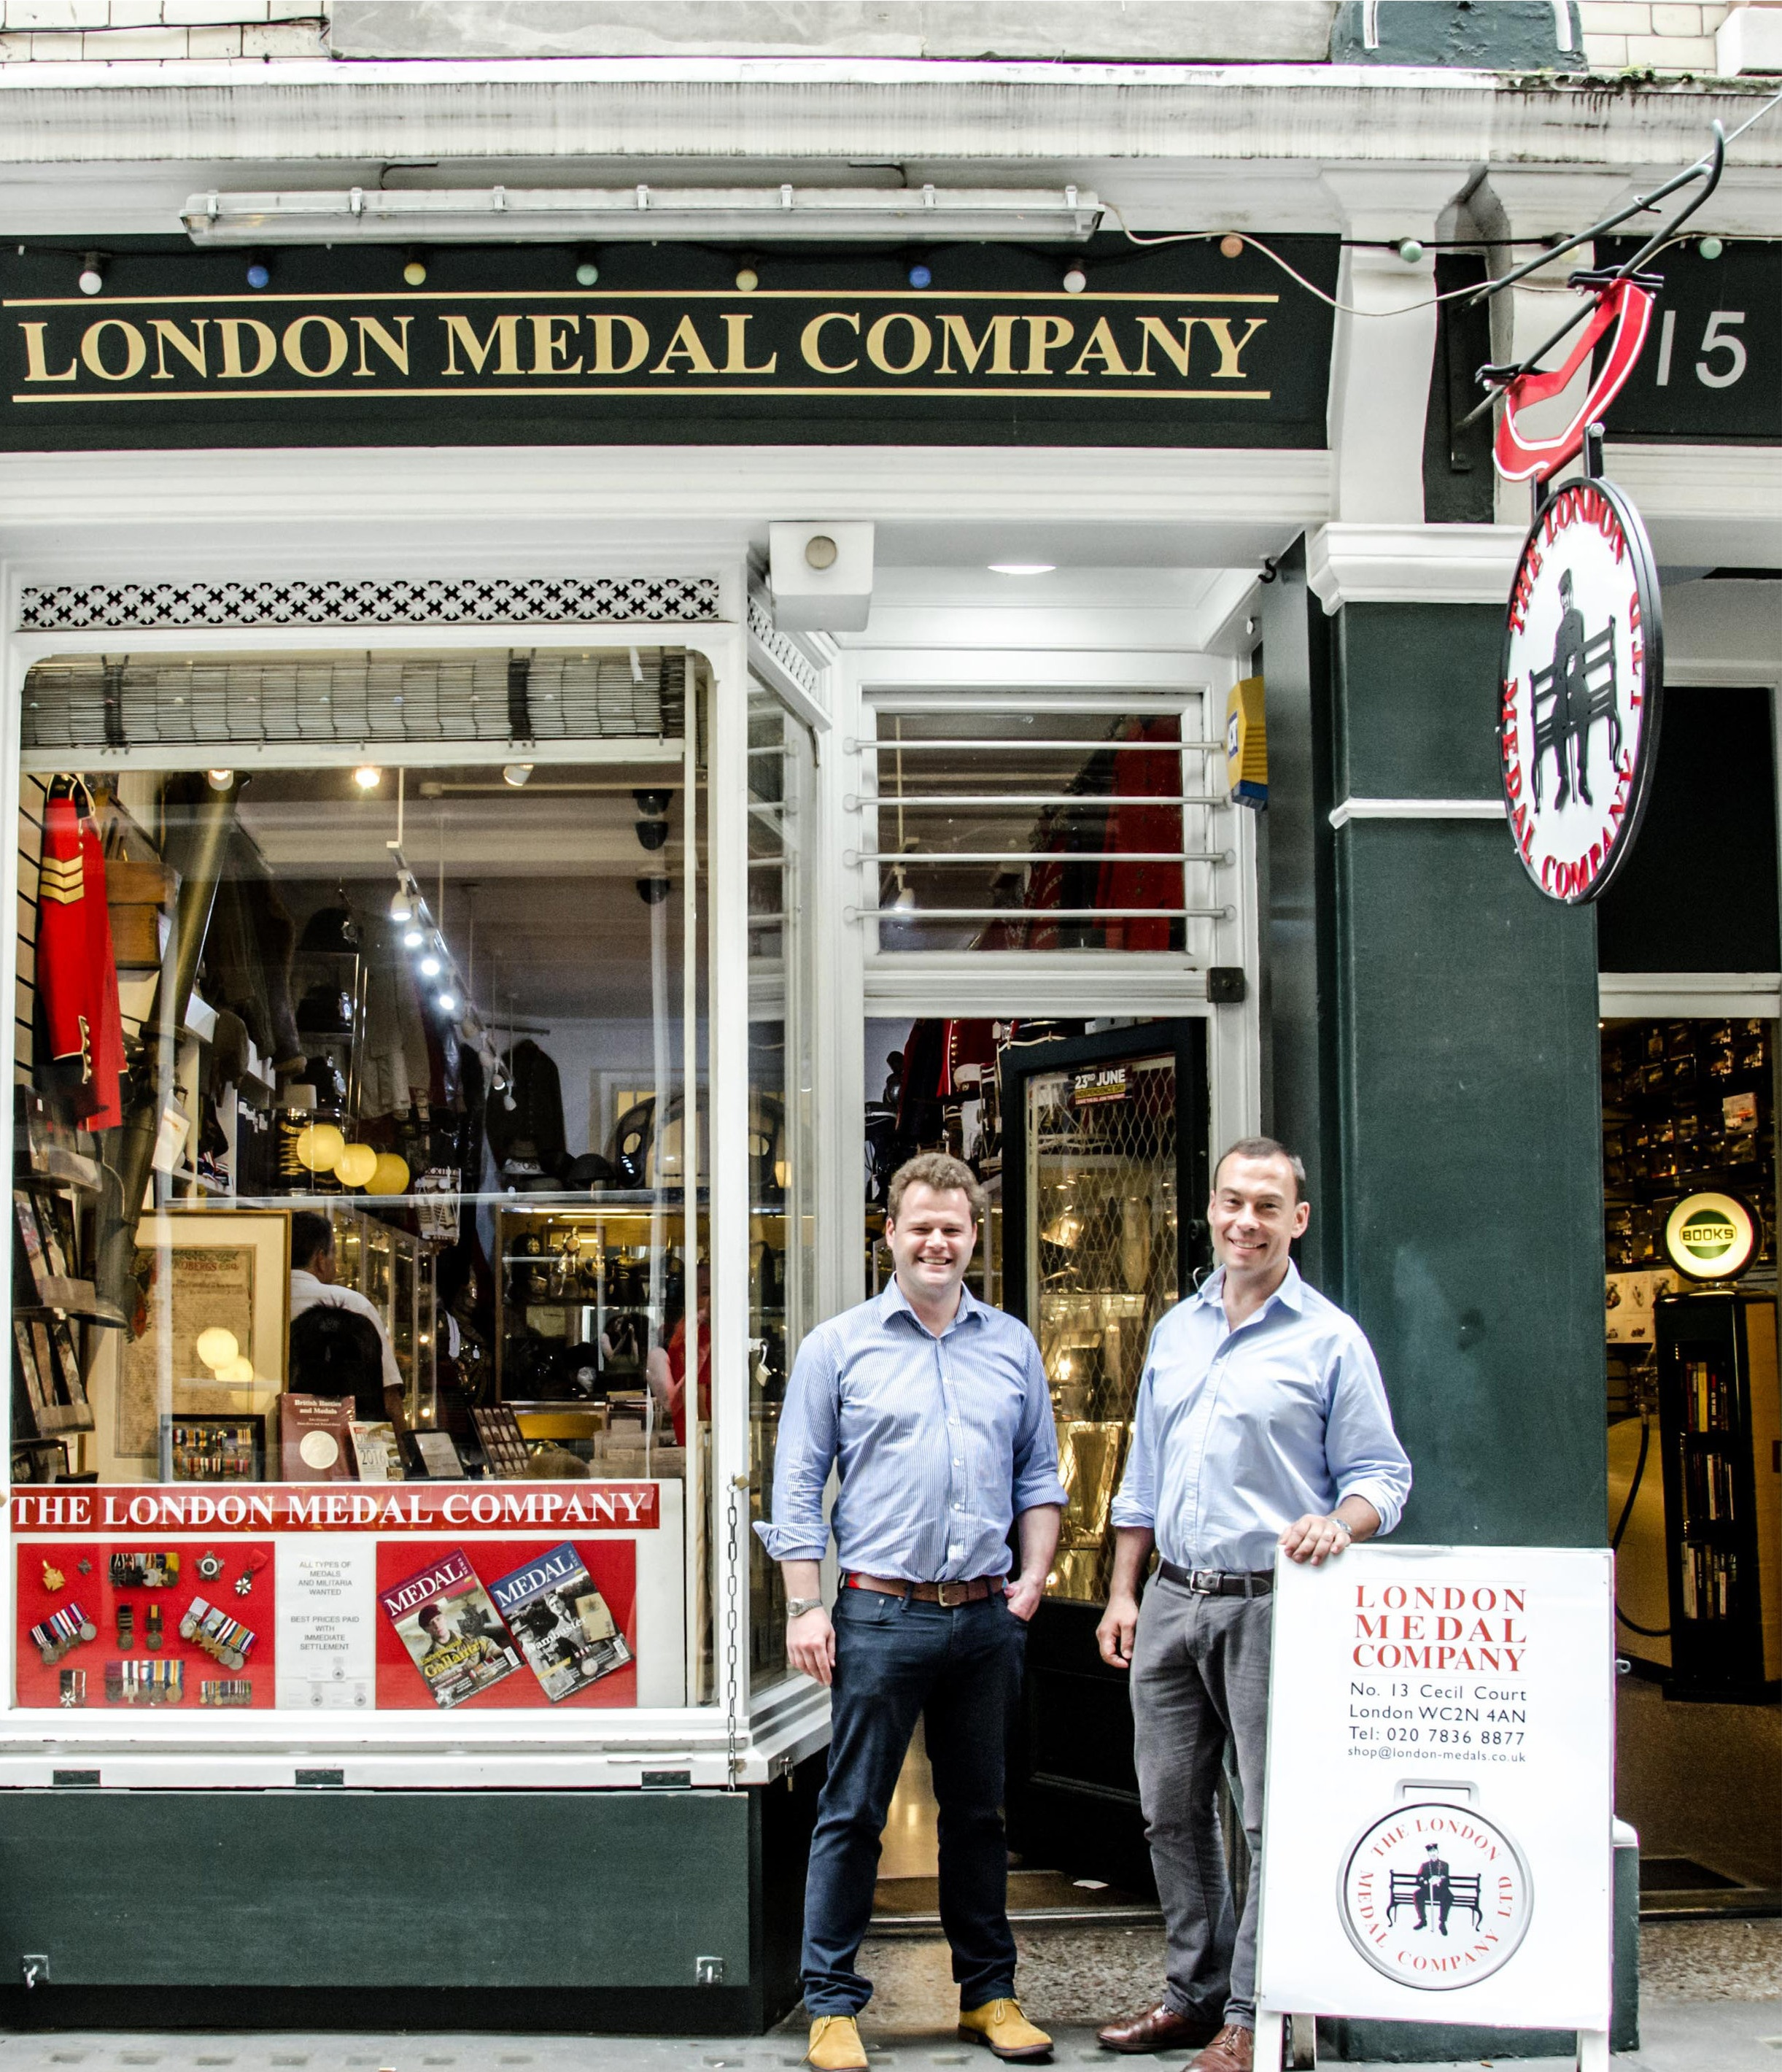 London Medal Company - Opening Hours:Monday to Friday 10am-6pmSaturday 10.30am-5pmCall: 020 7836 8877Email: shop@london-medals.co.ukMember of BADA and the OMRS